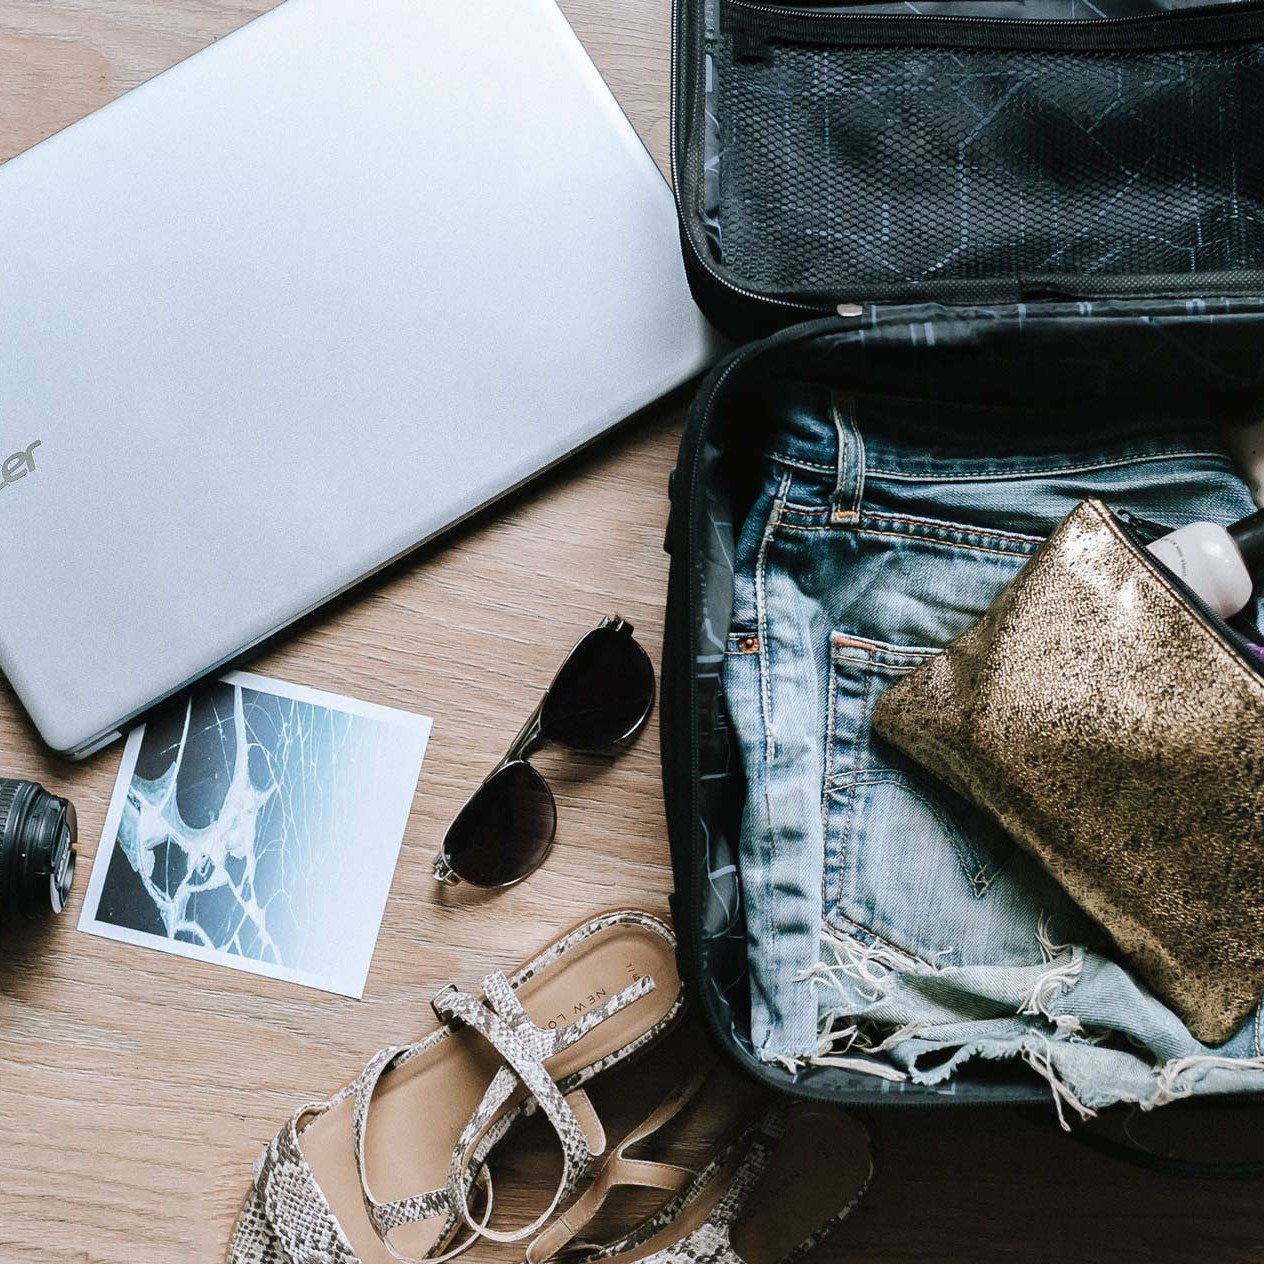 How to pack and unpack your emotional baggage when you are abroad - How to prepare yourself emotionally when going abroad.